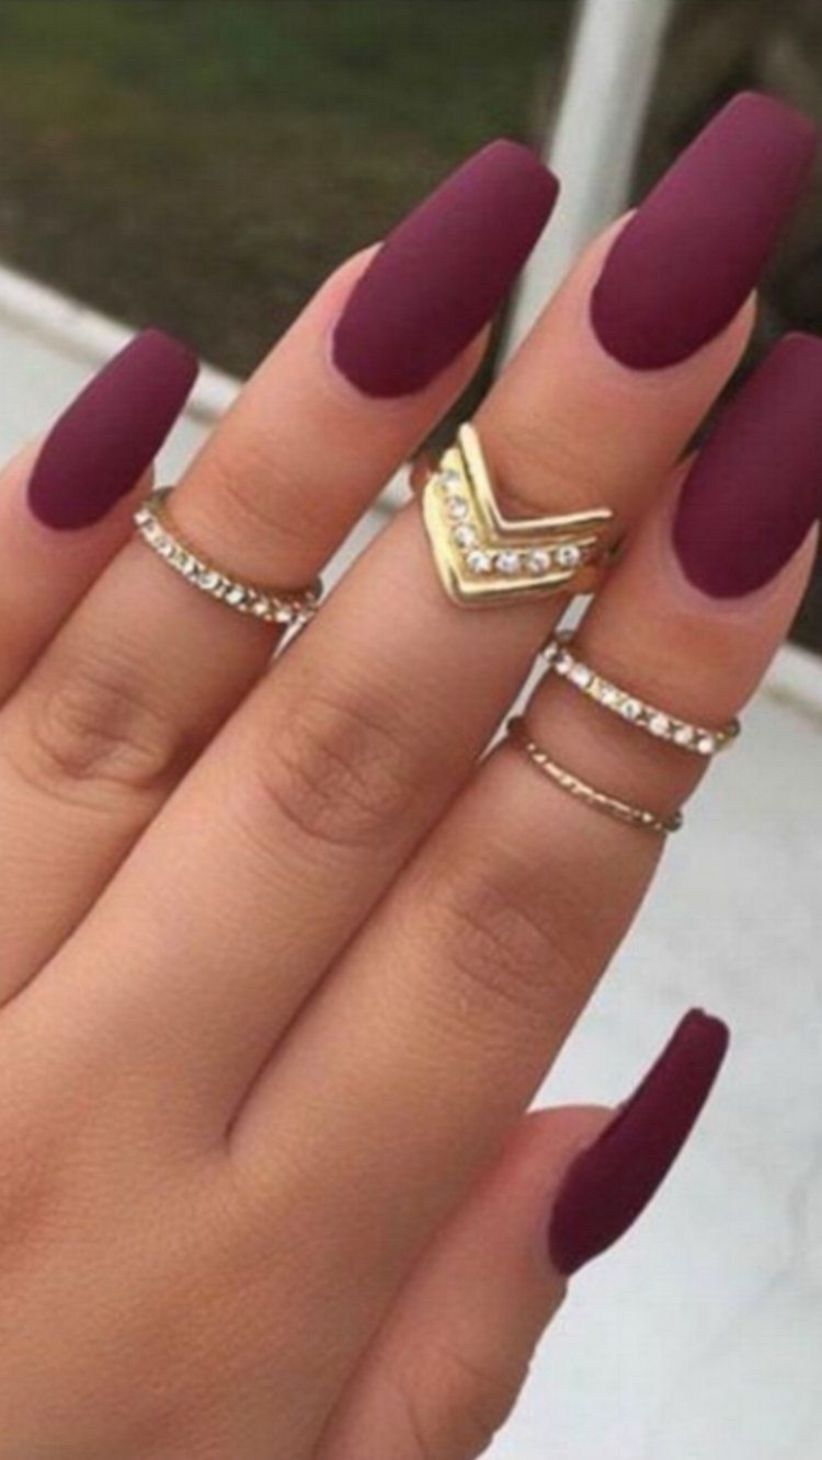 Outstanding Holiday Winter Nails Art Designs 2019 27 101outfit Com Burgundy Matte Nails Matte Nails Design Fall Acrylic Nails